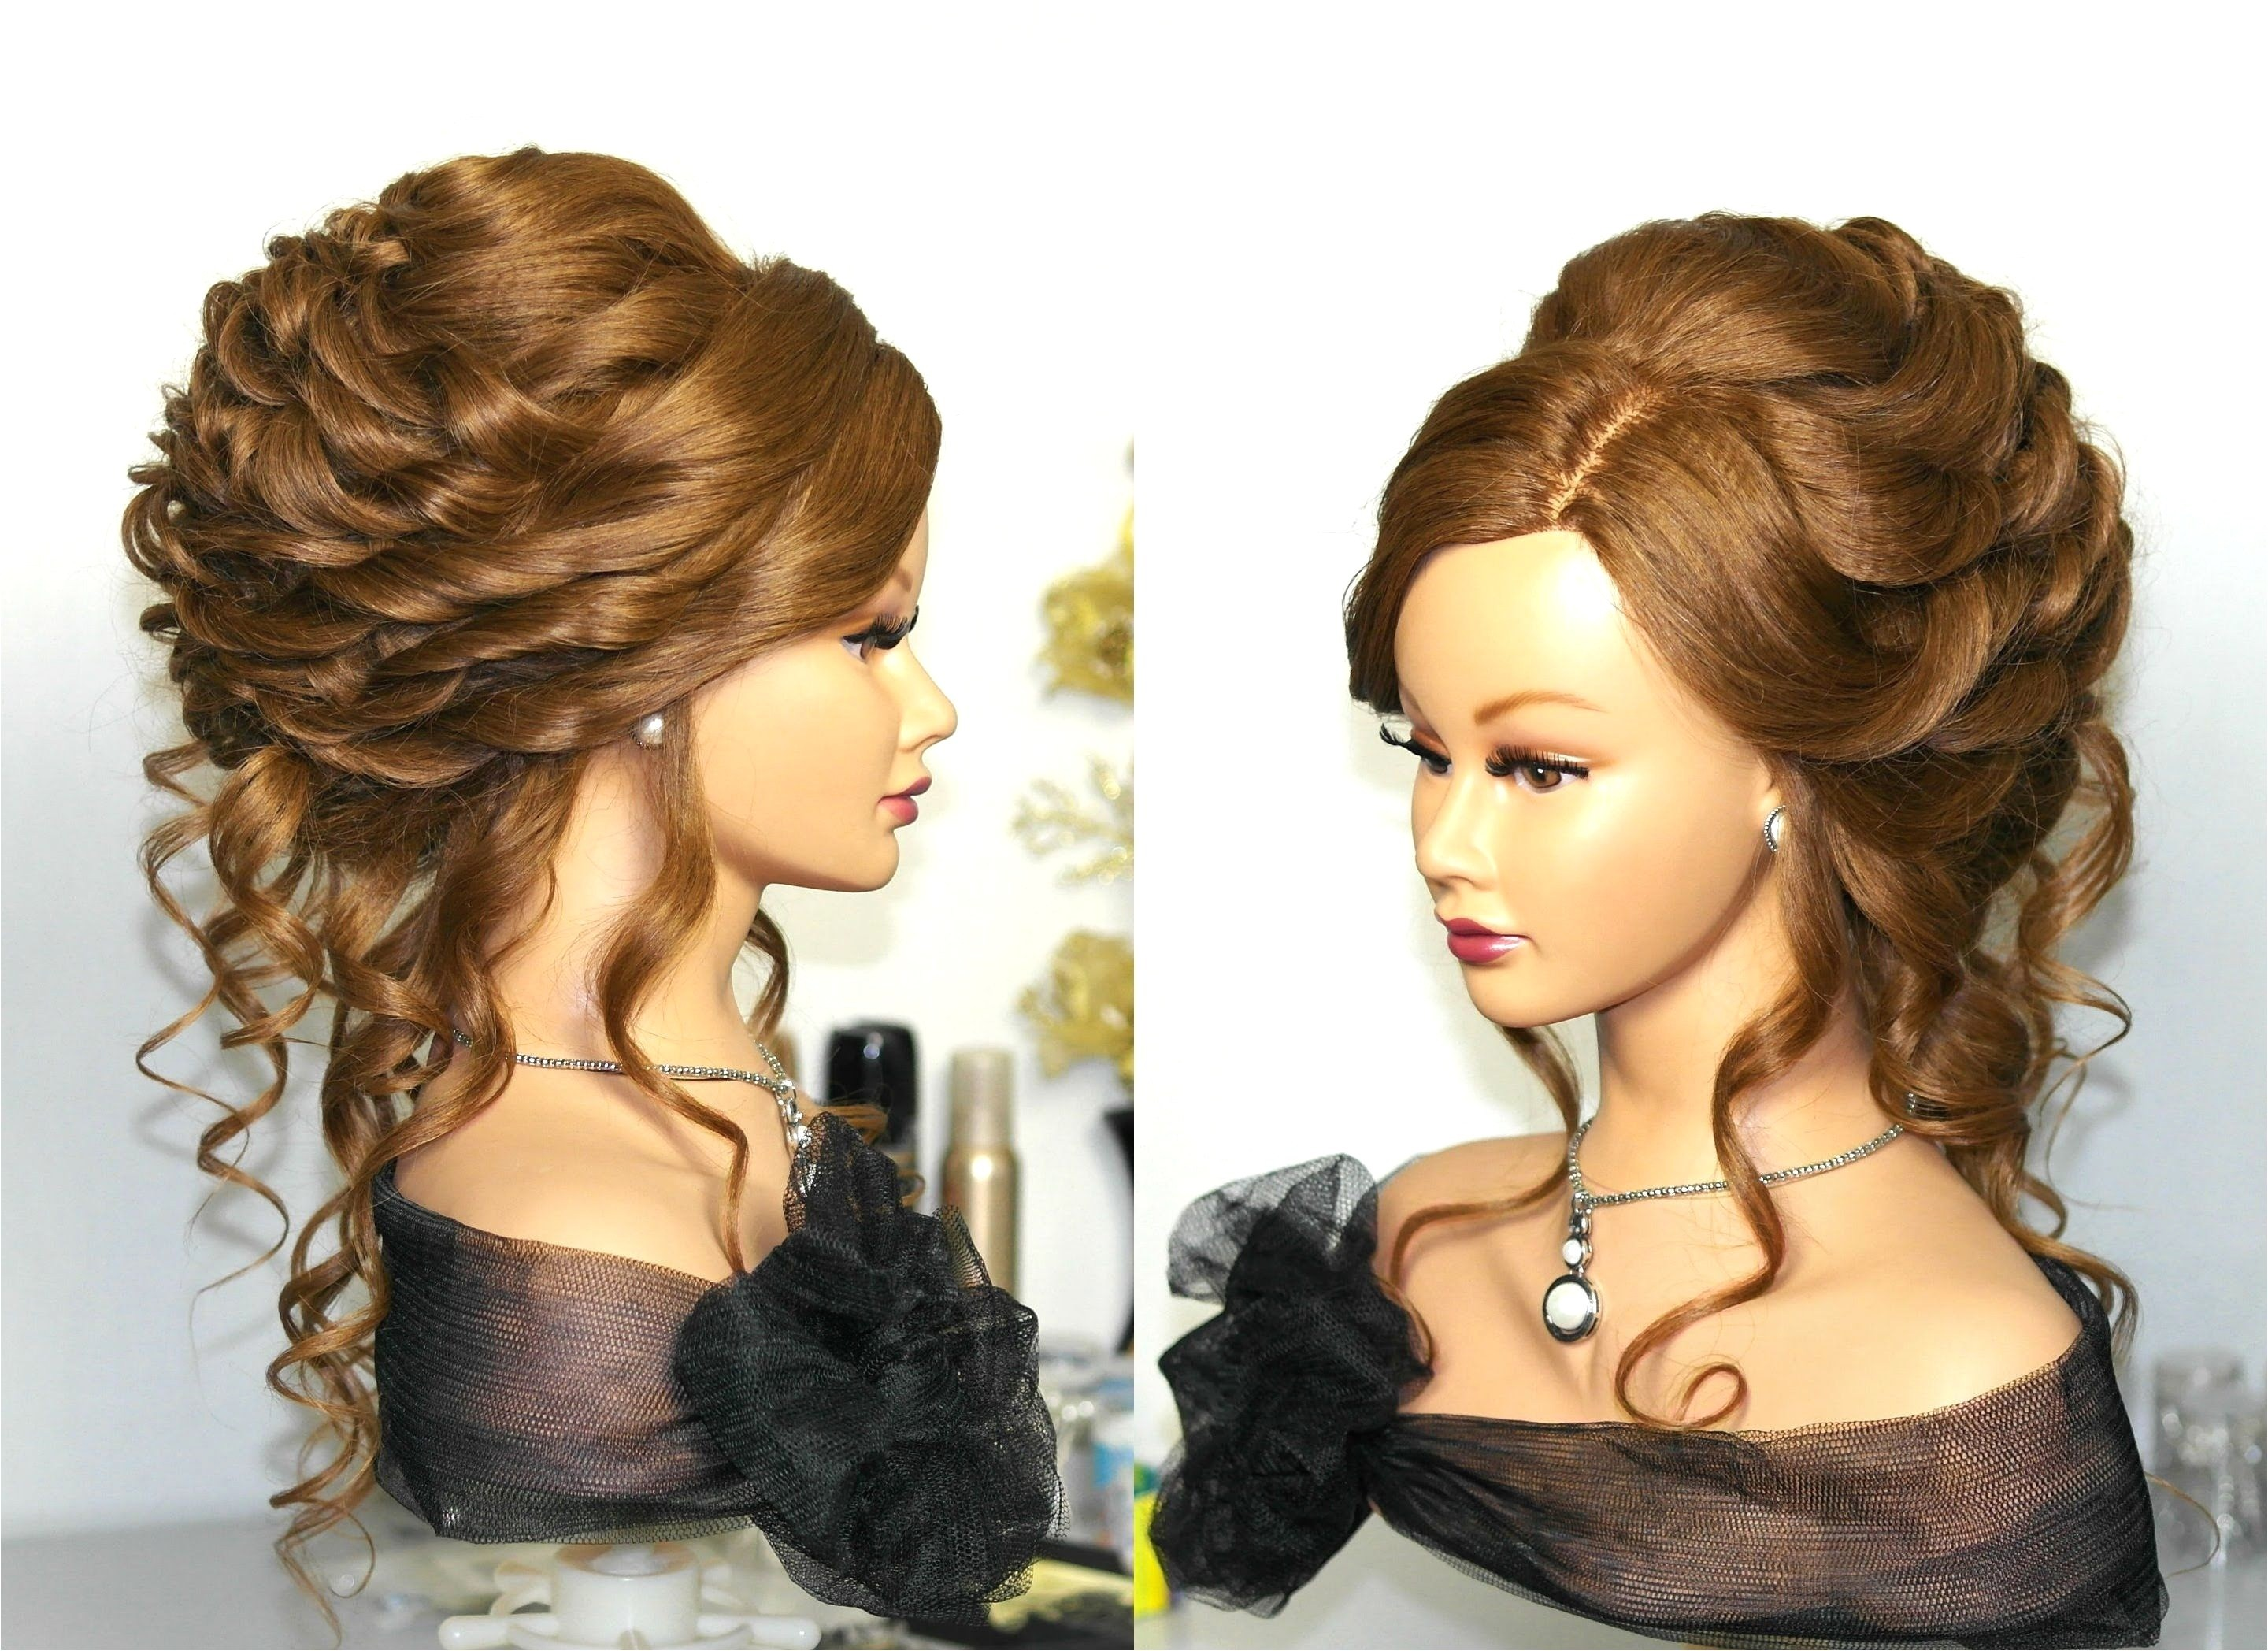 Hairstyles for American Girl Dolls with Curly Hair Elegant Curly Bun Hairstyles Awesome Inspirational Wedding Hairstyles